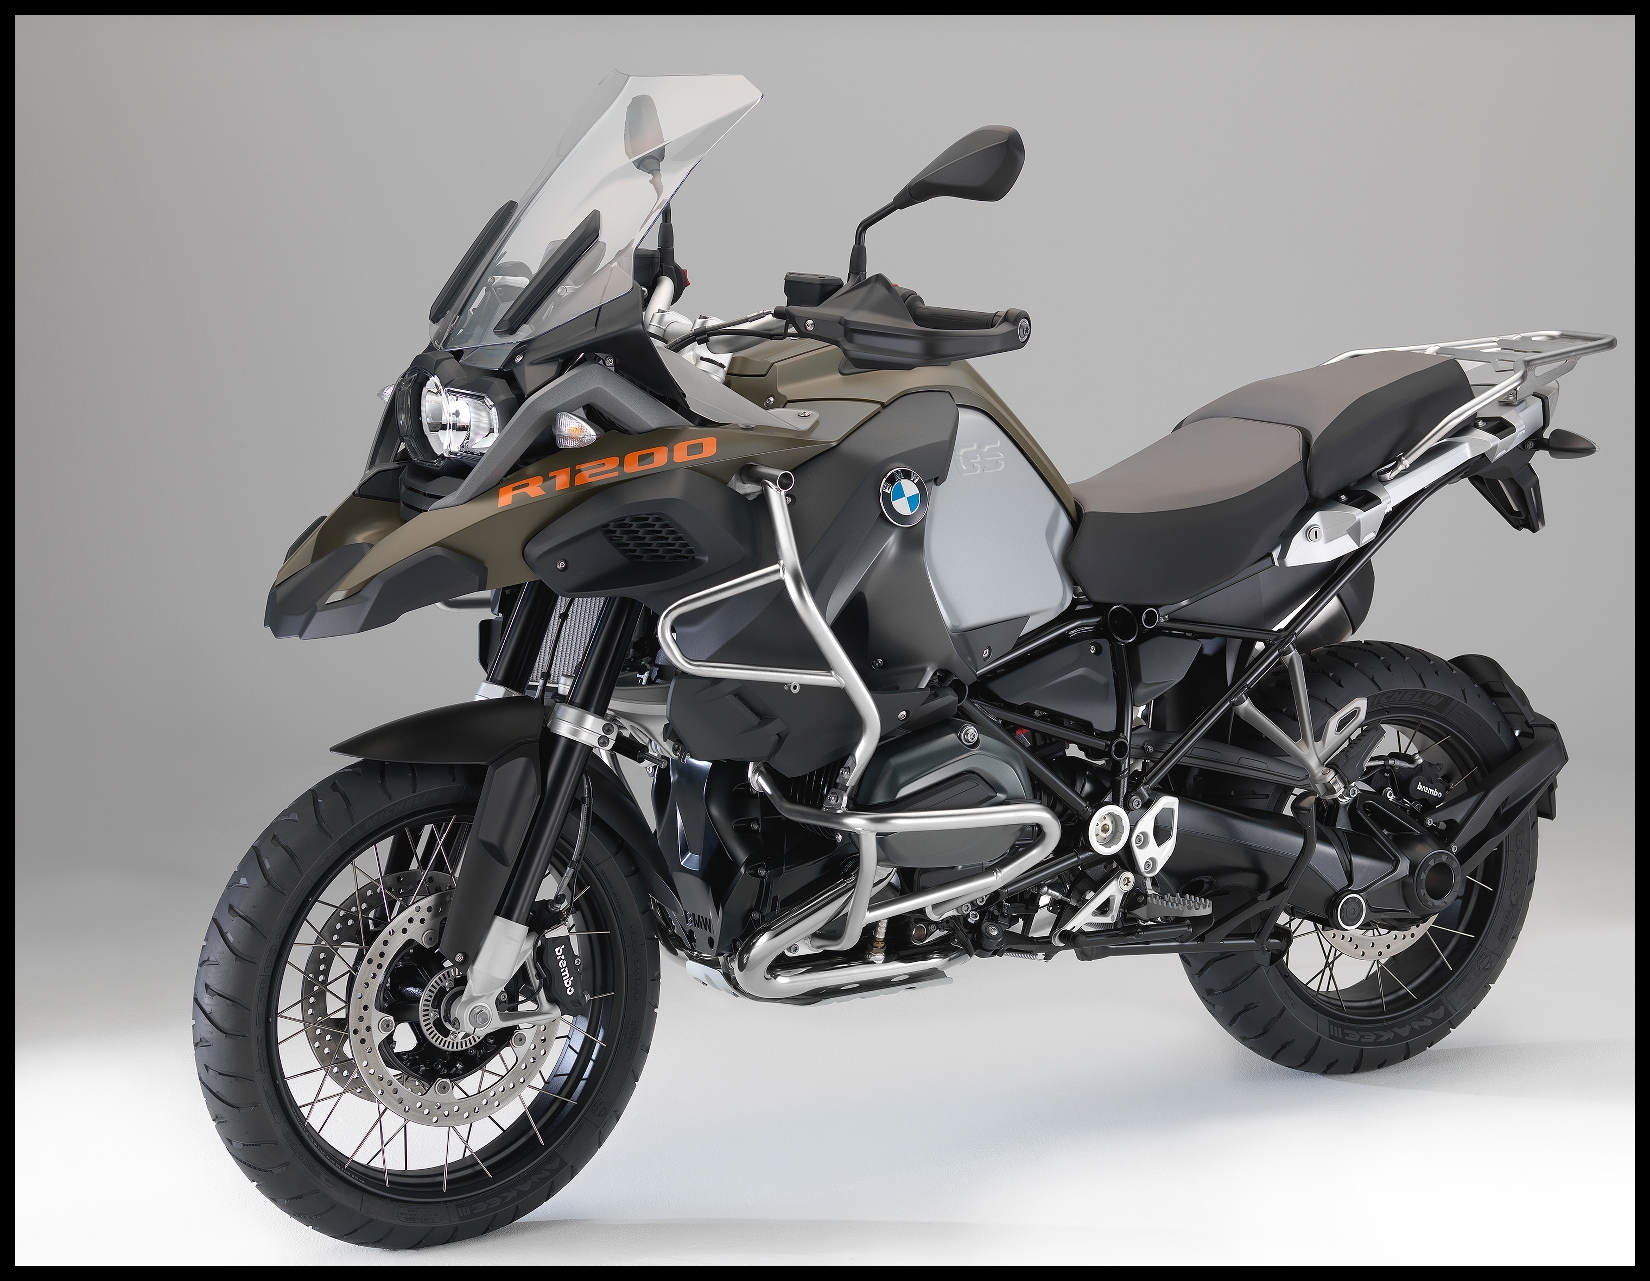 Highlights of the new BMW R 1200 GS Adventure